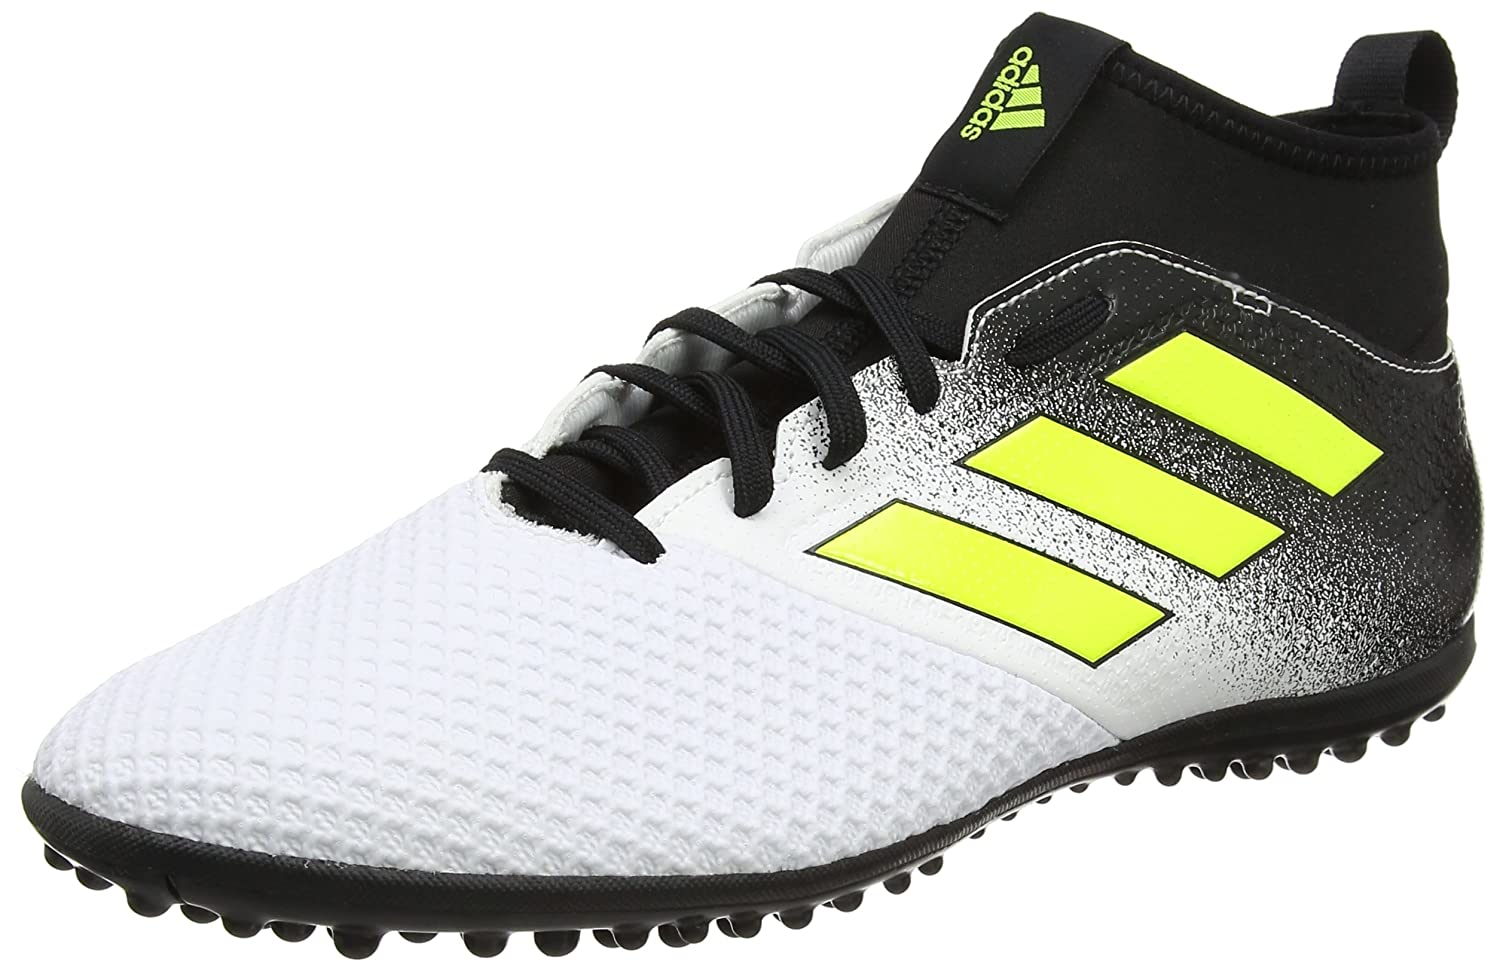 92462e43fa7d adidas Men s Ace 17.3 Fg Football Shoes  Amazon.co.uk  Shoes   Bags